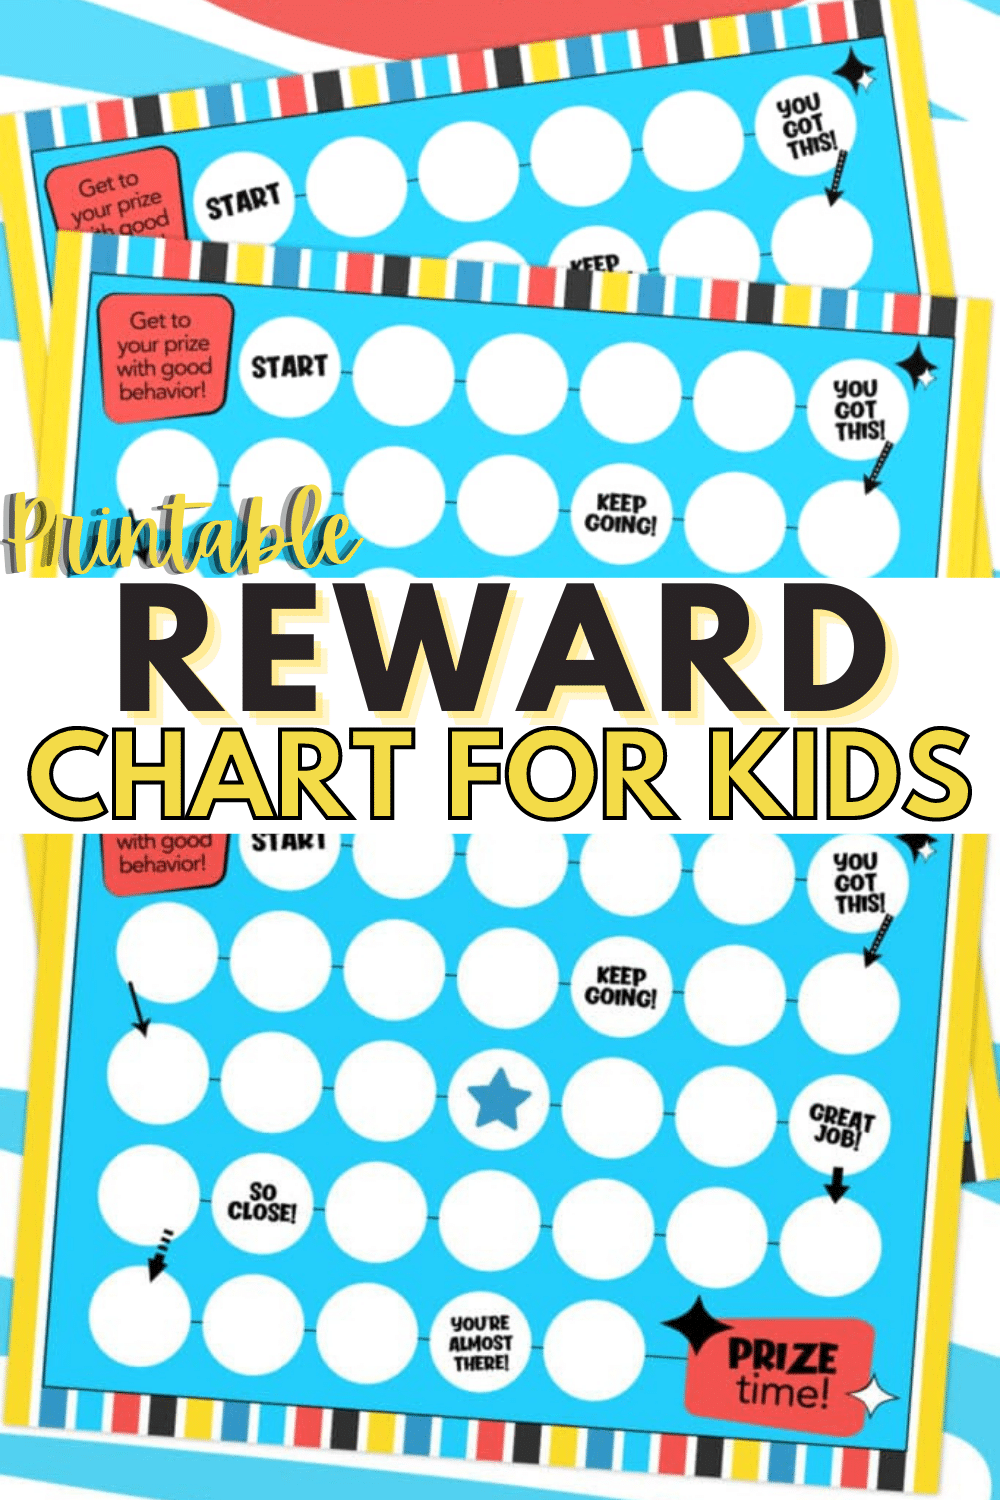 This printable reward chart for kids can be used in many ways and is a great tool to help kids improve behavior and reach goals. #printables #rewardcharts #printablesforkids via @wondermomwannab